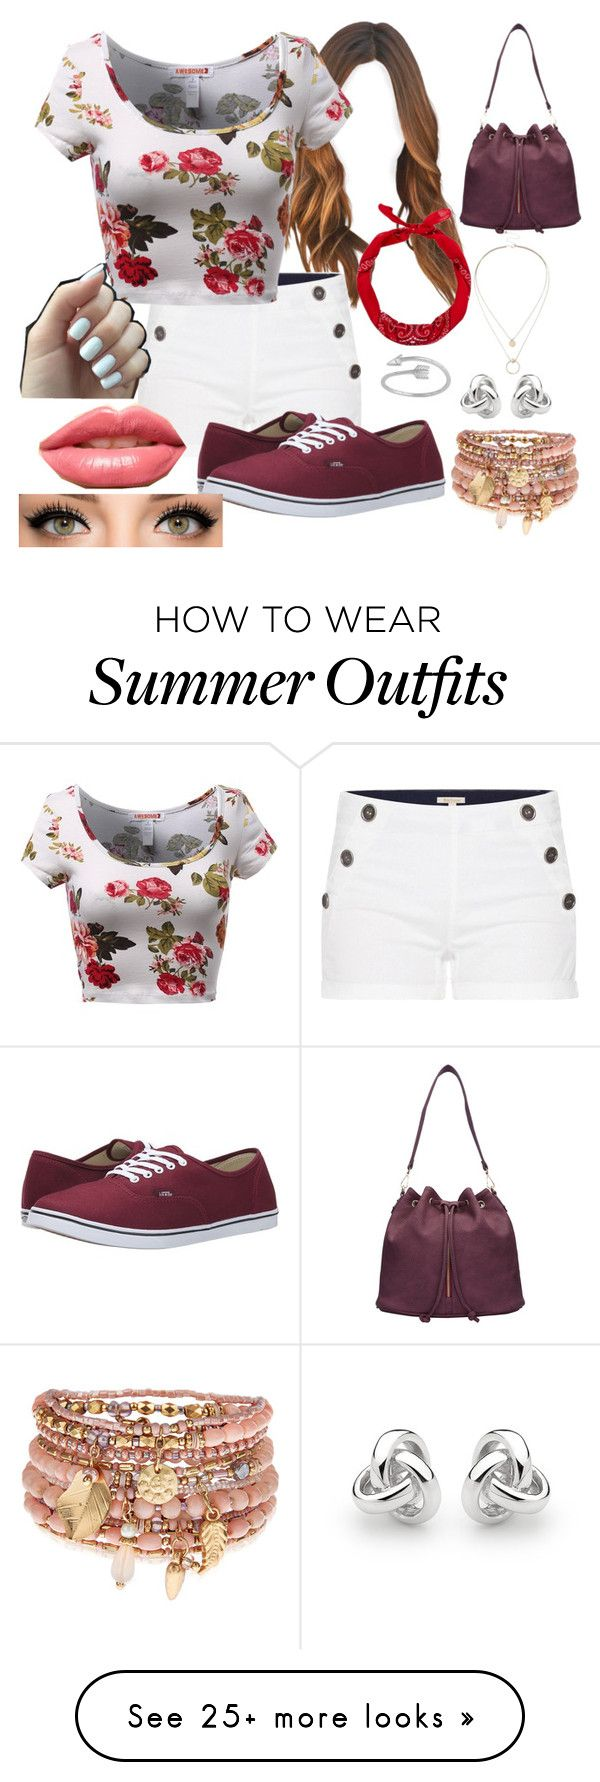 """random floral and maroon summer outfit"" by cass-mccullough on Polyvore featuring Barbour, Vans, LASplash, Accessorize, Georgini, Sole Society, women's clothing, women, female and woman"